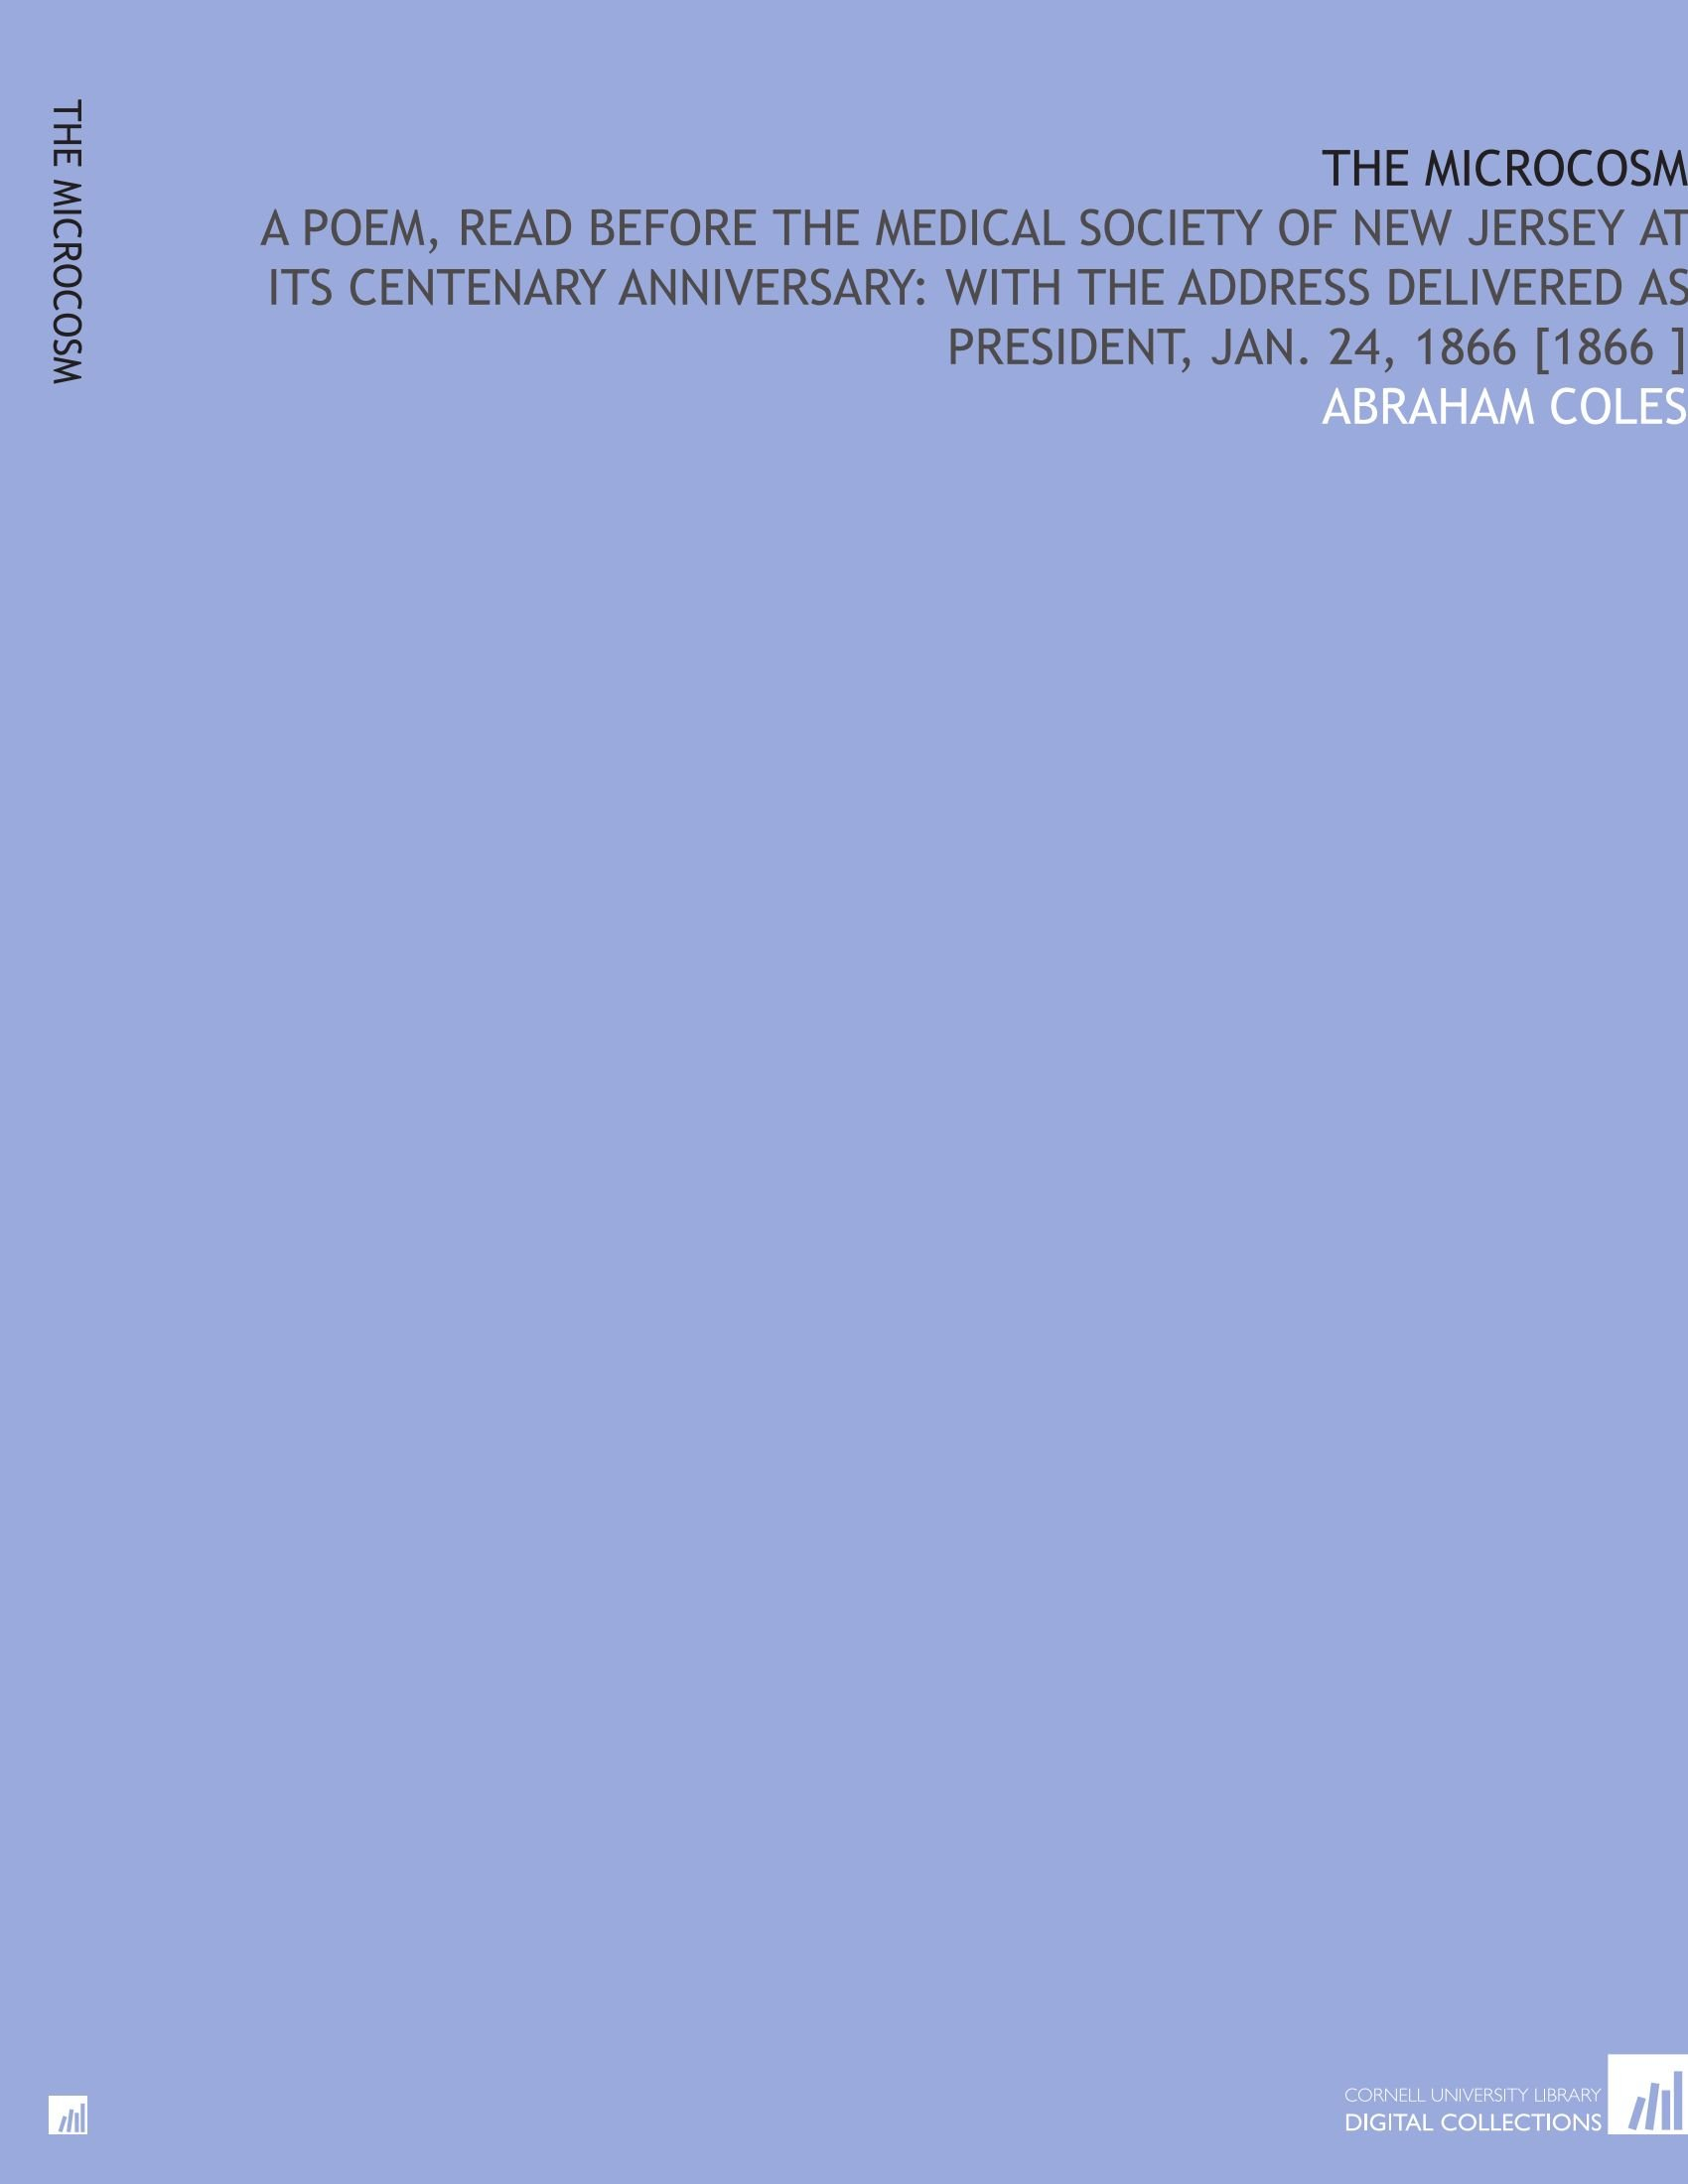 Download The Microcosm: A Poem, Read Before the Medical Society of New Jersey at Its Centenary Anniversary: With the Address Delivered as President, Jan. 24, 1866 [1866 ] PDF